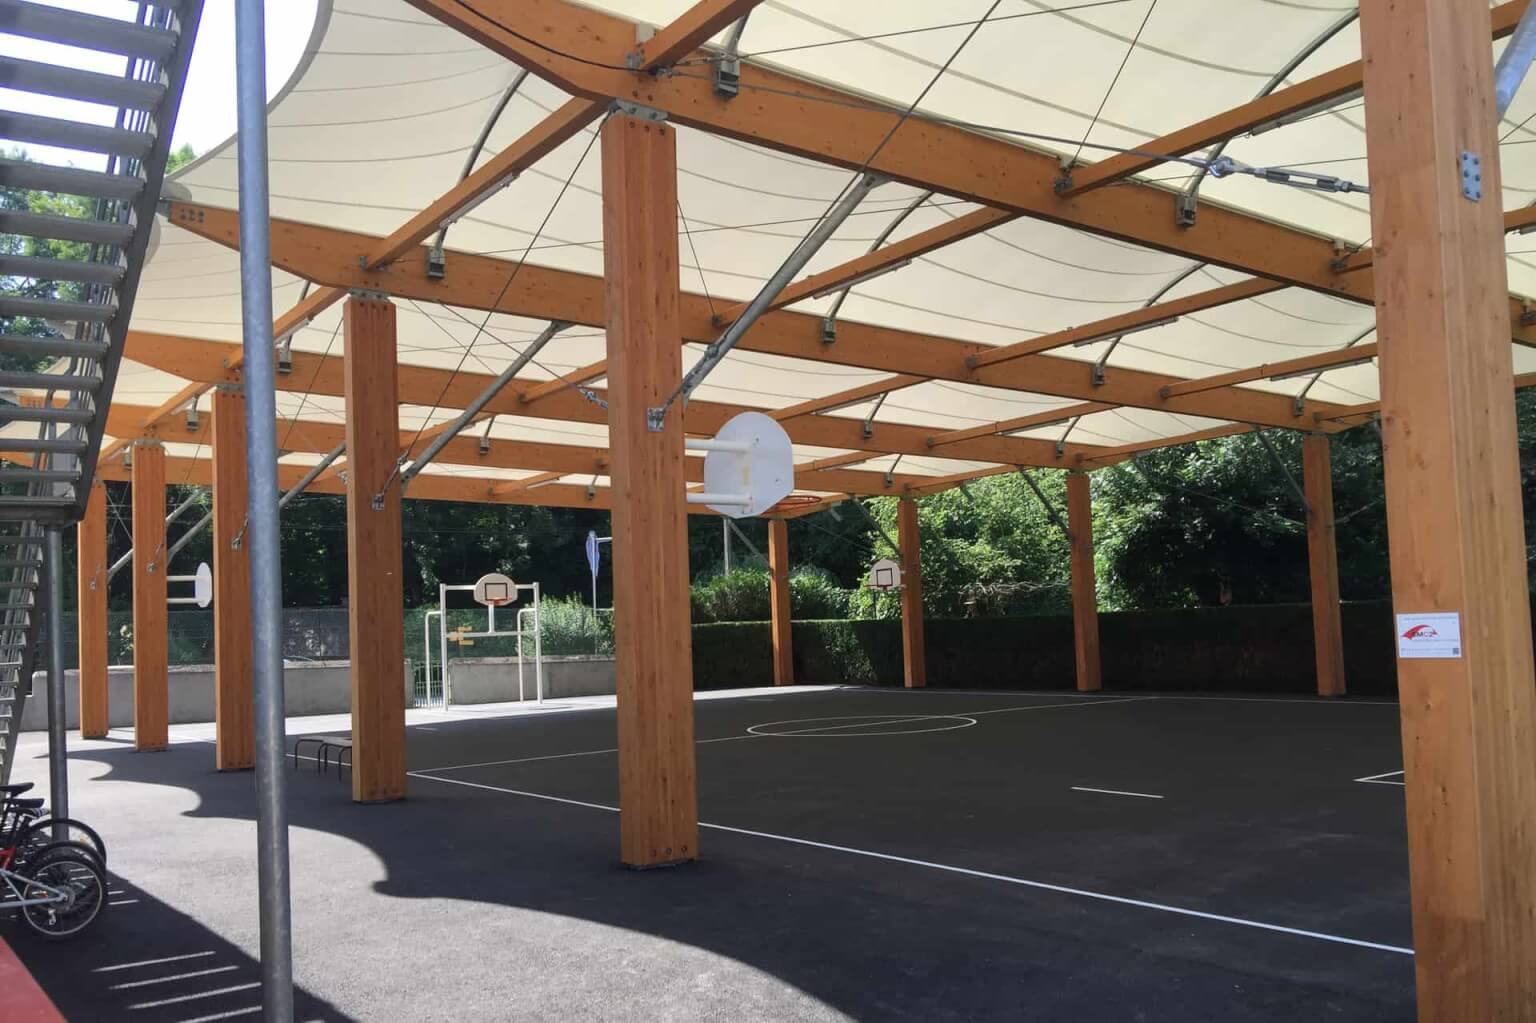 WOODEN CONSTRUCTION TIMBER FRAME TENSILE FABRIC STRUCTURE